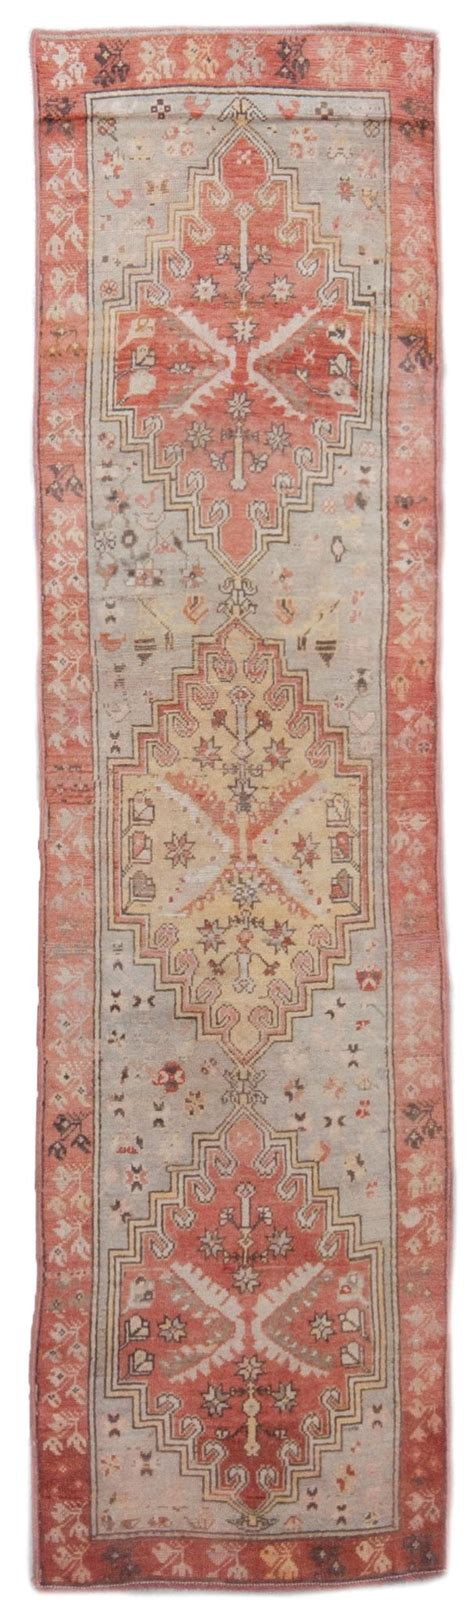 accent rug meaning 25 best ideas about turkish rugs on pinterest turkish